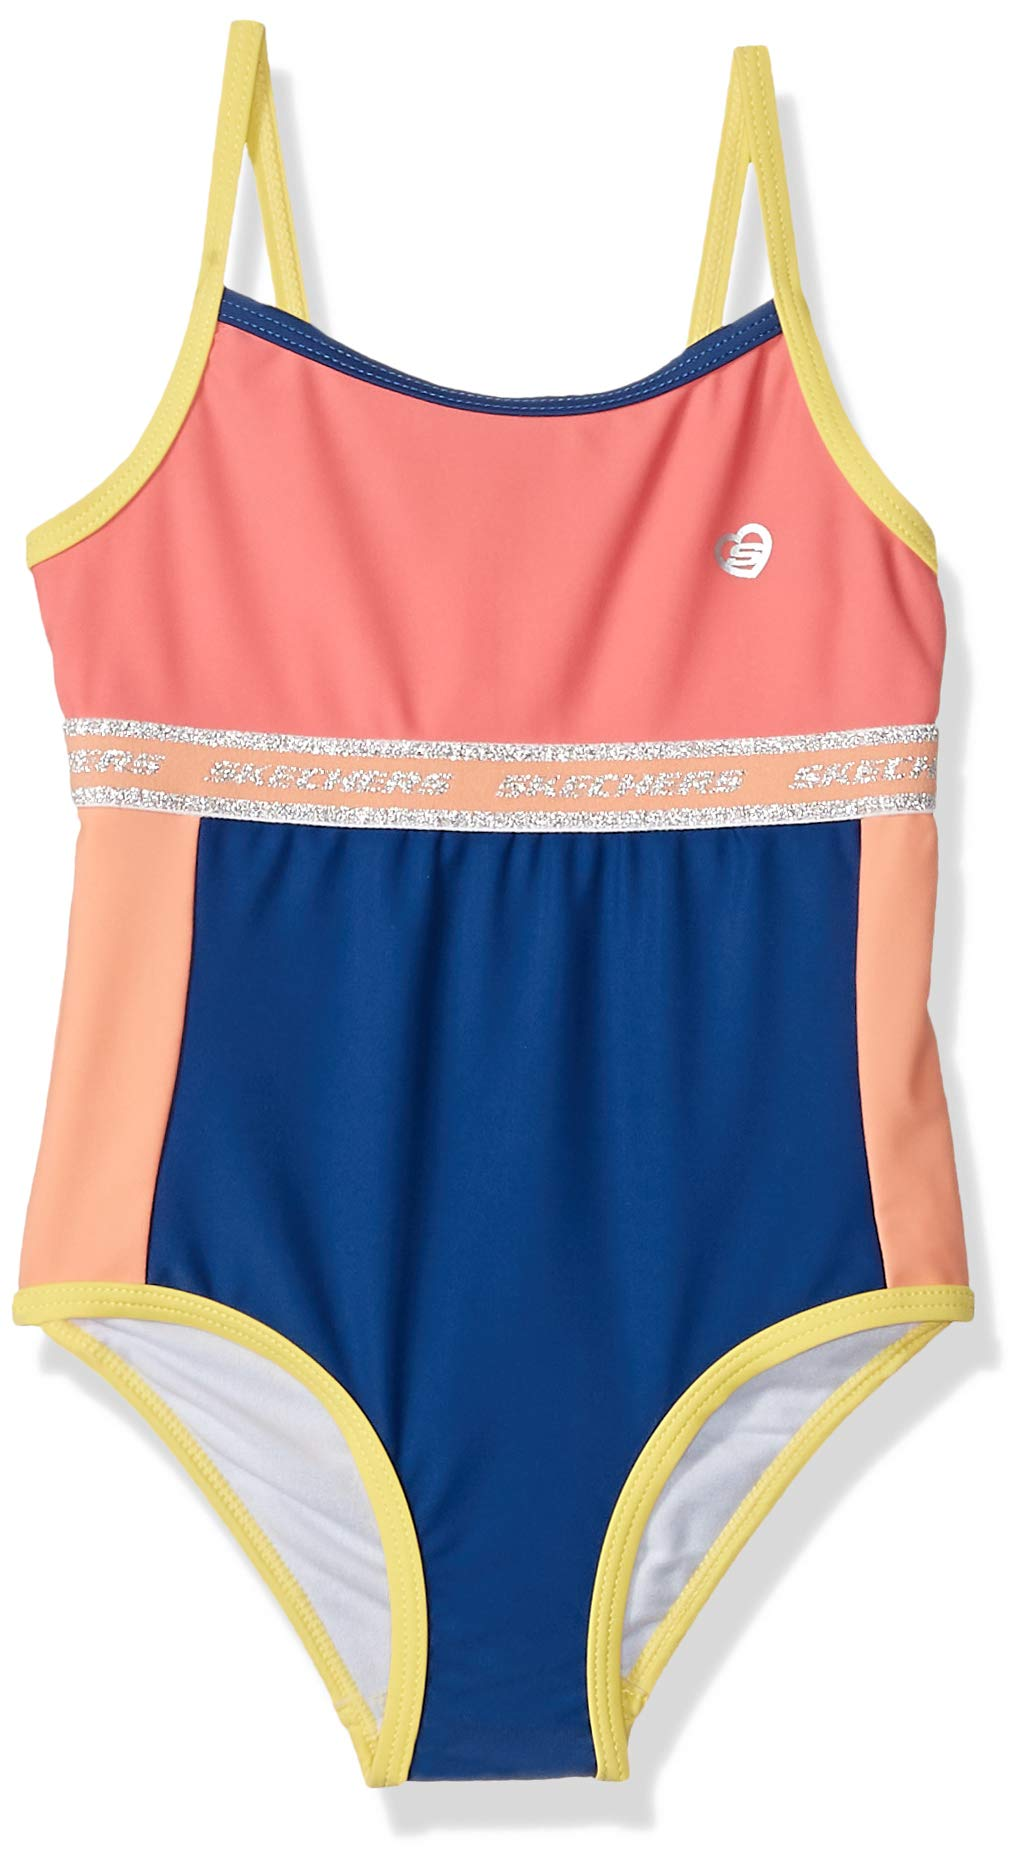 Skechers Girls' 1-Piece Swim Bathing Suit